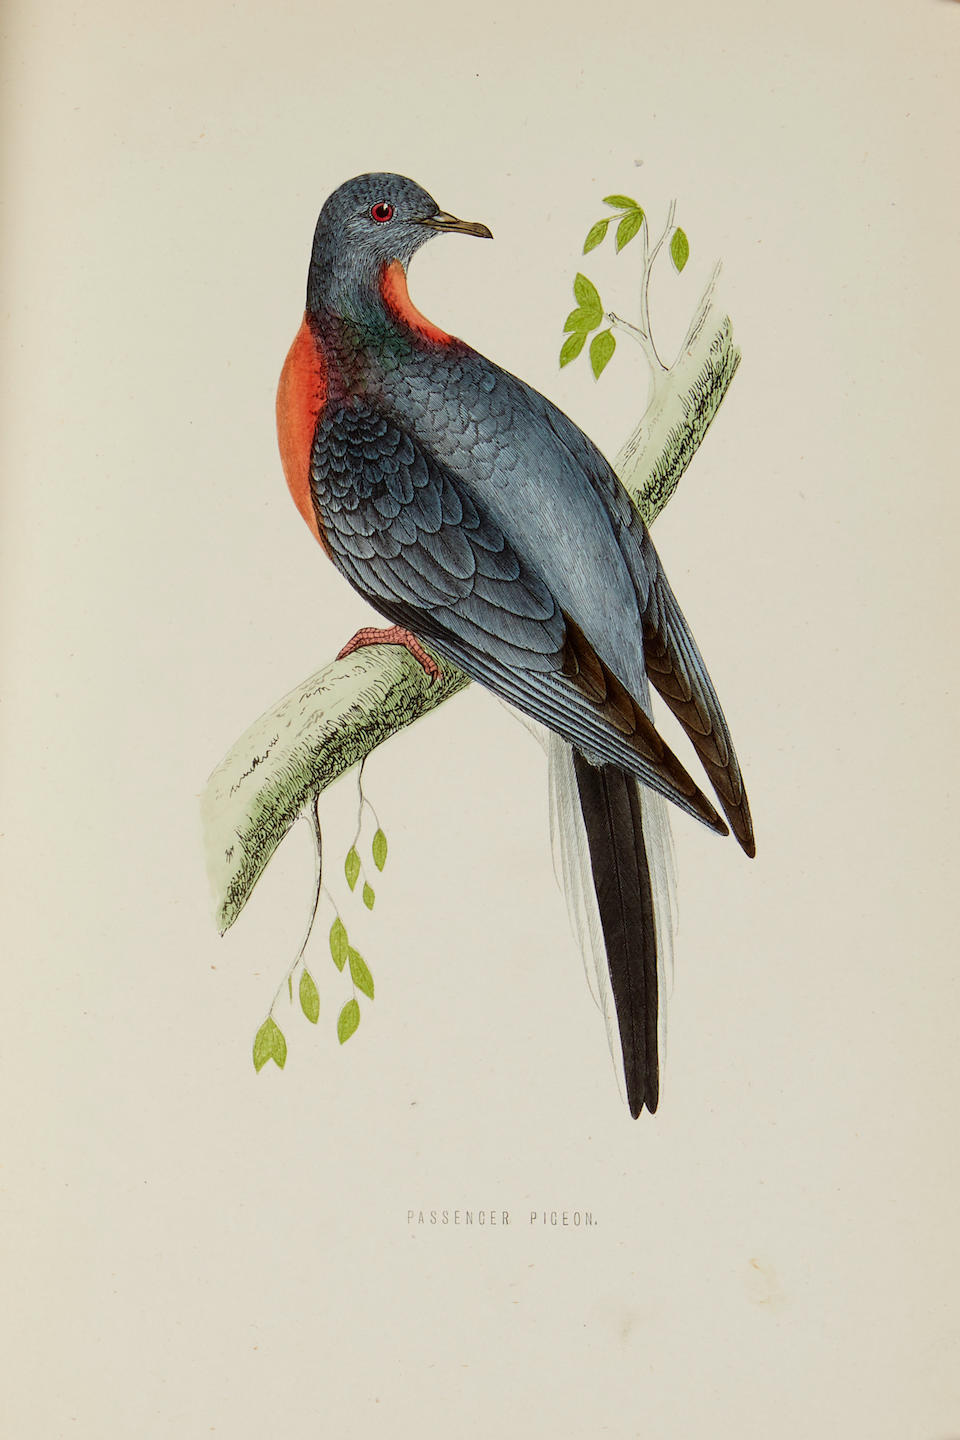 MORRIS, FRANCIS ORPEN. 1810-1893. A History of British Birds. London: Bell and Daldy, 1870.